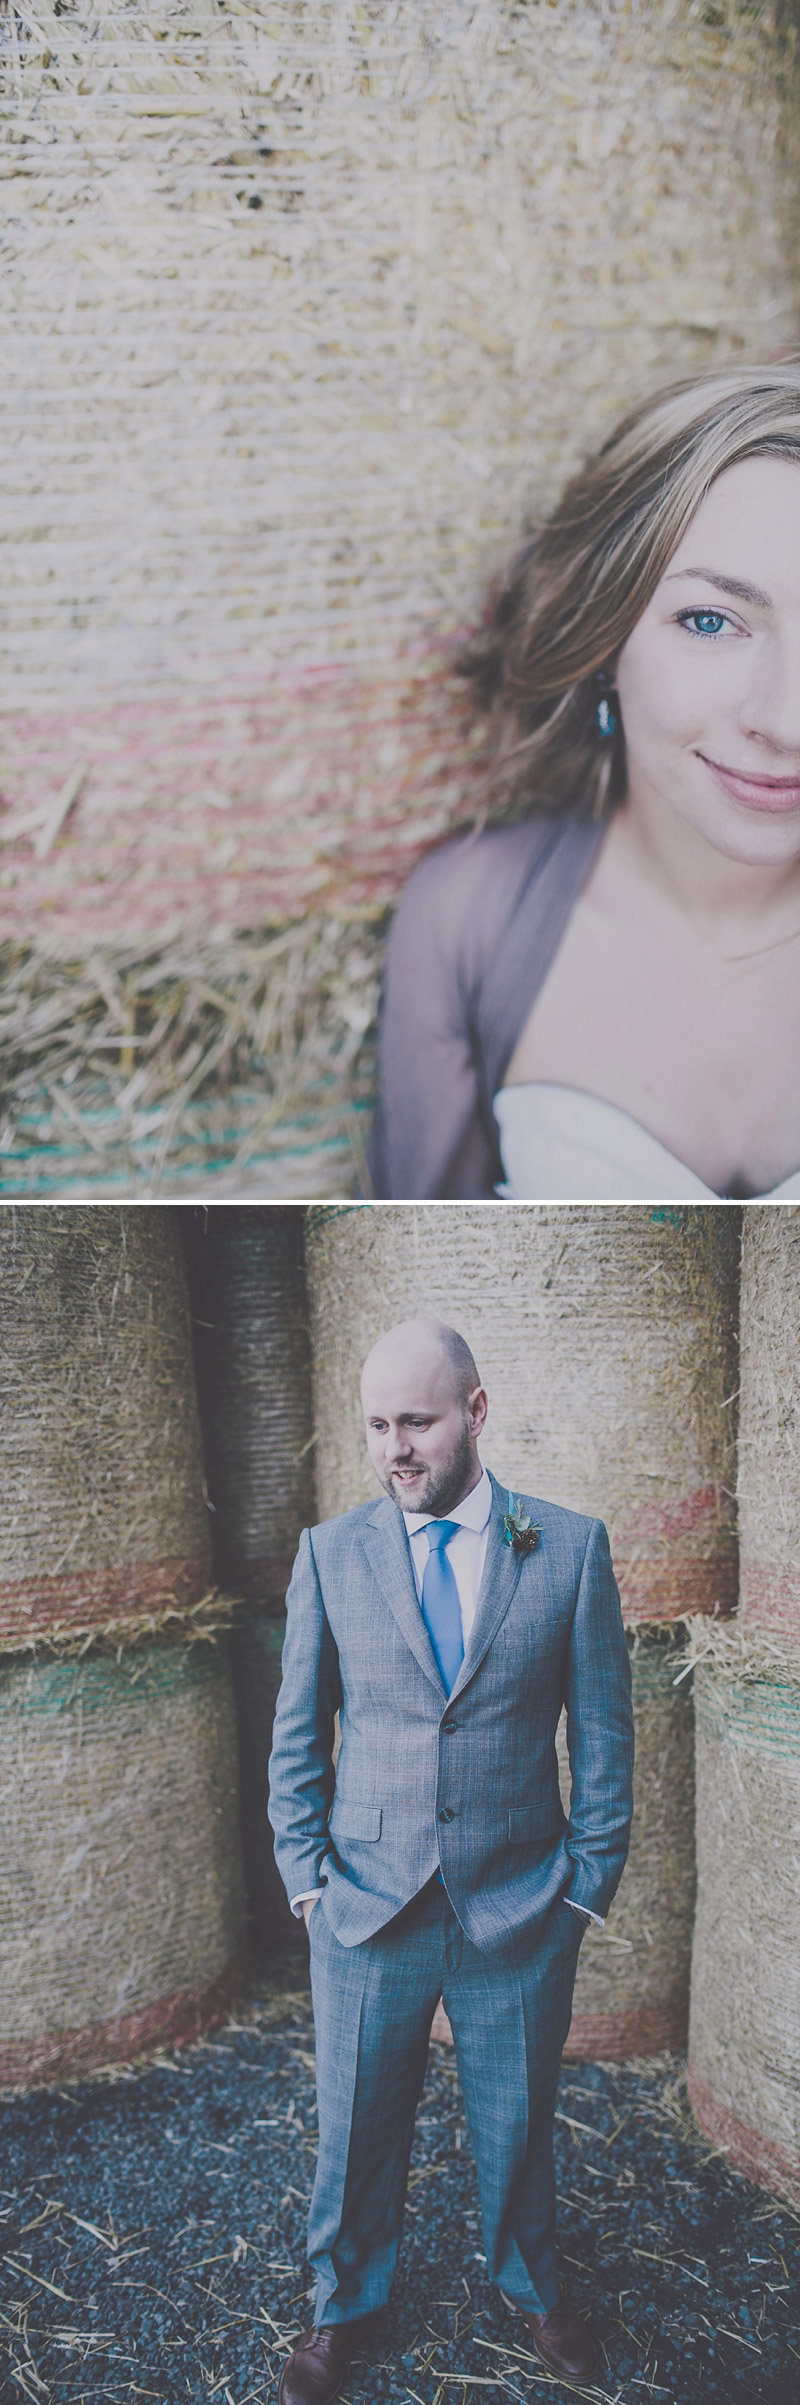 James-Melia-Bride-Groom-close-up